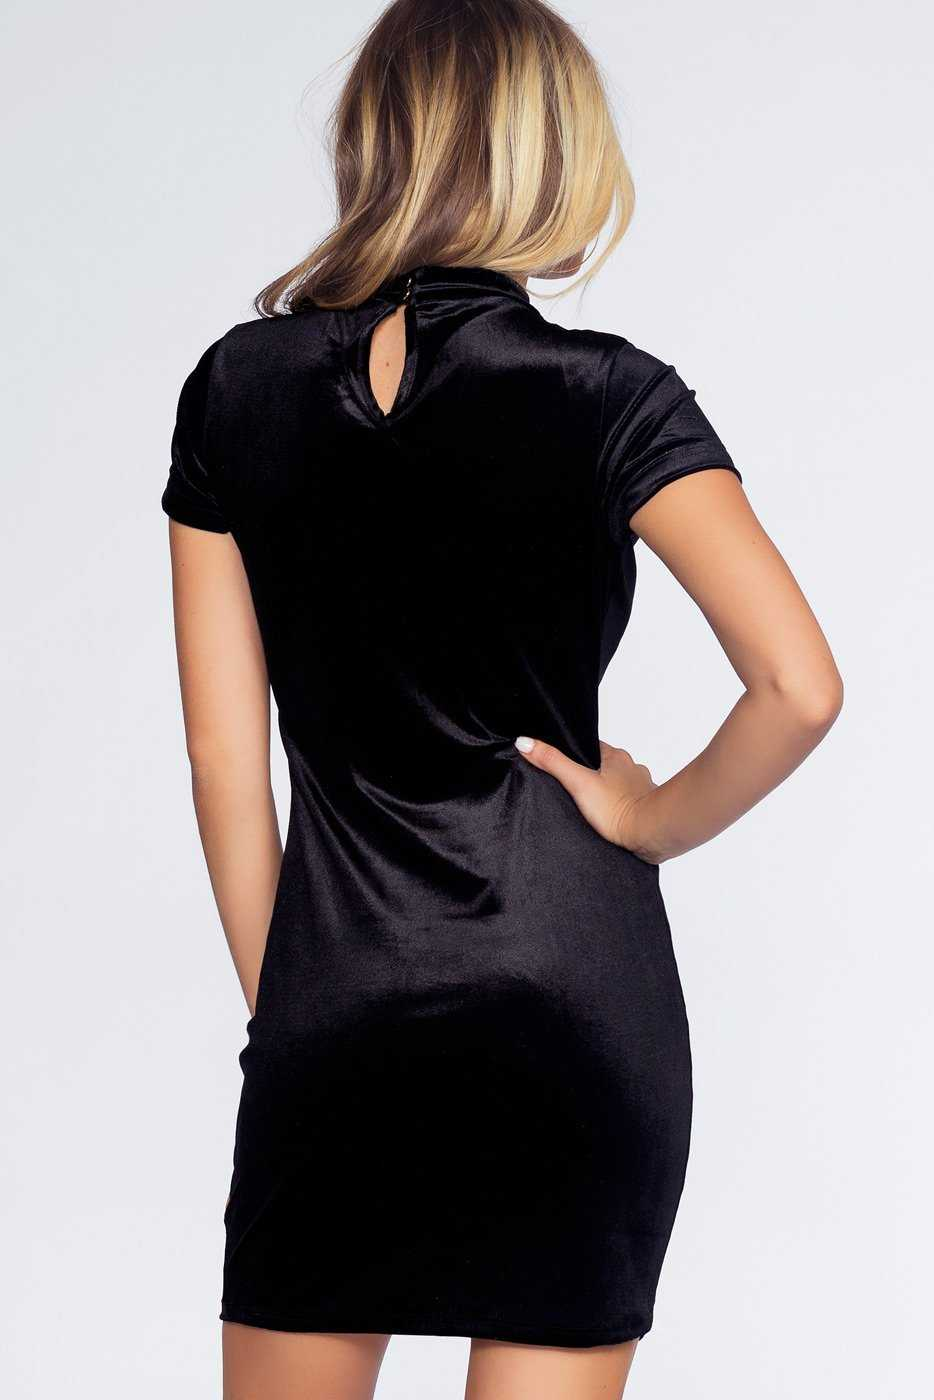 Dresses - Your Desire Dress - Midnight Black